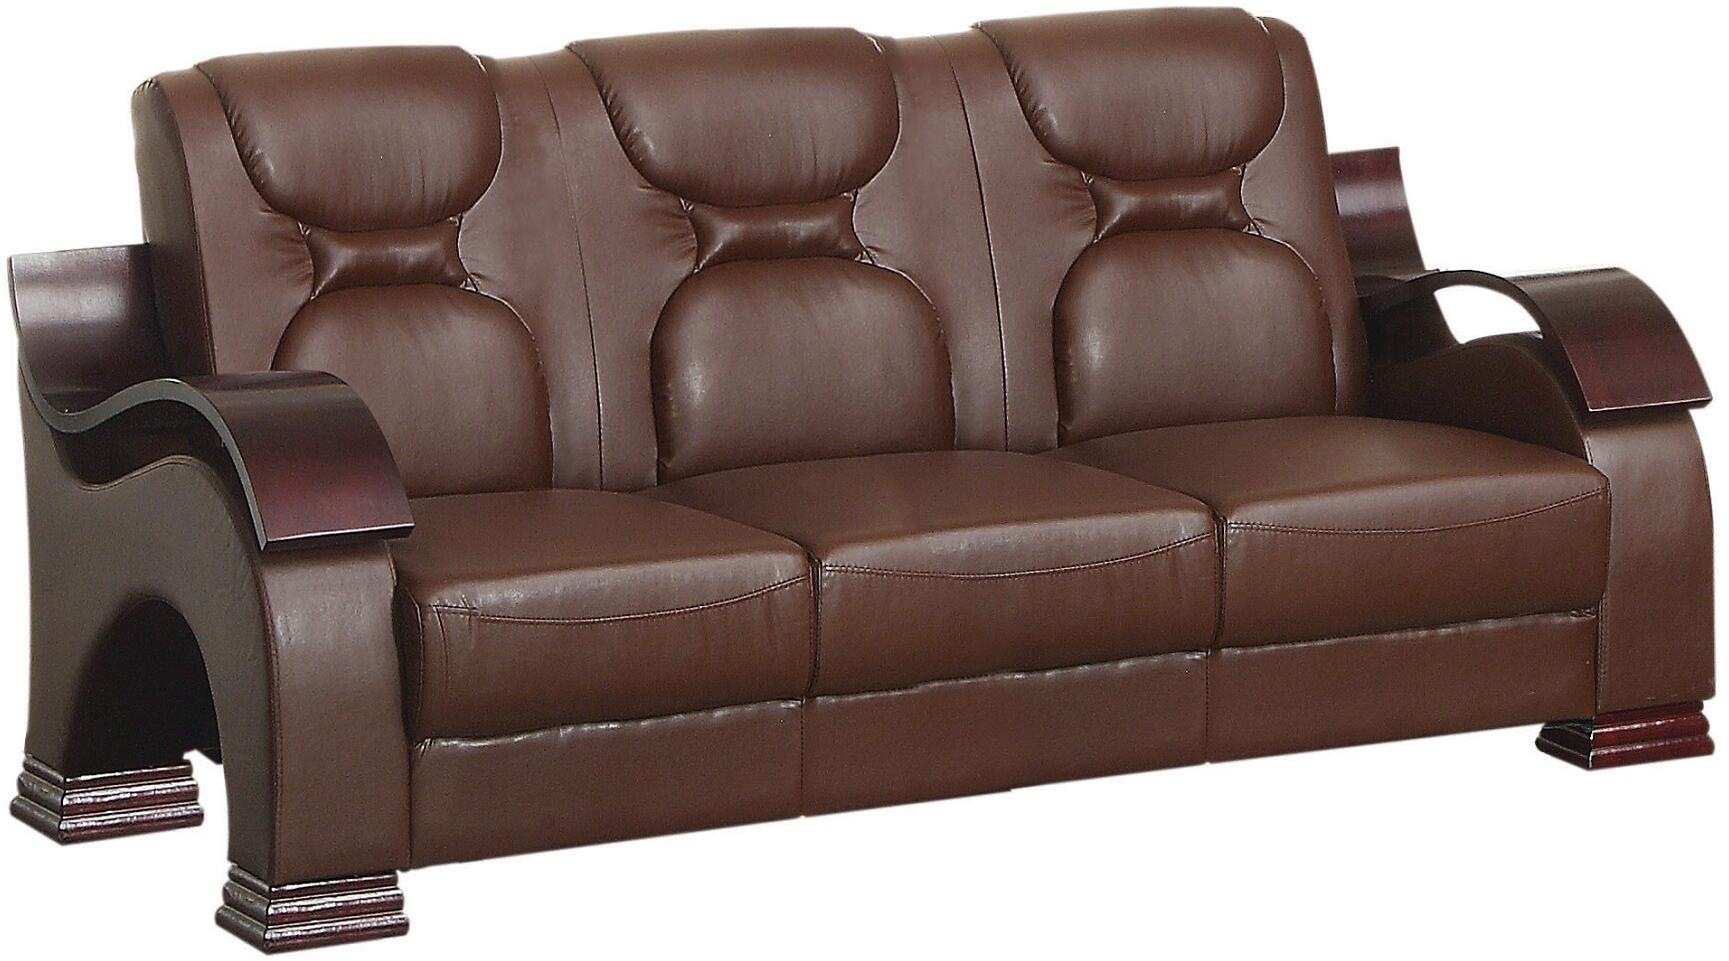 Glory Furniture G480s Stationary Faux Leather Sofa Appliances Connection